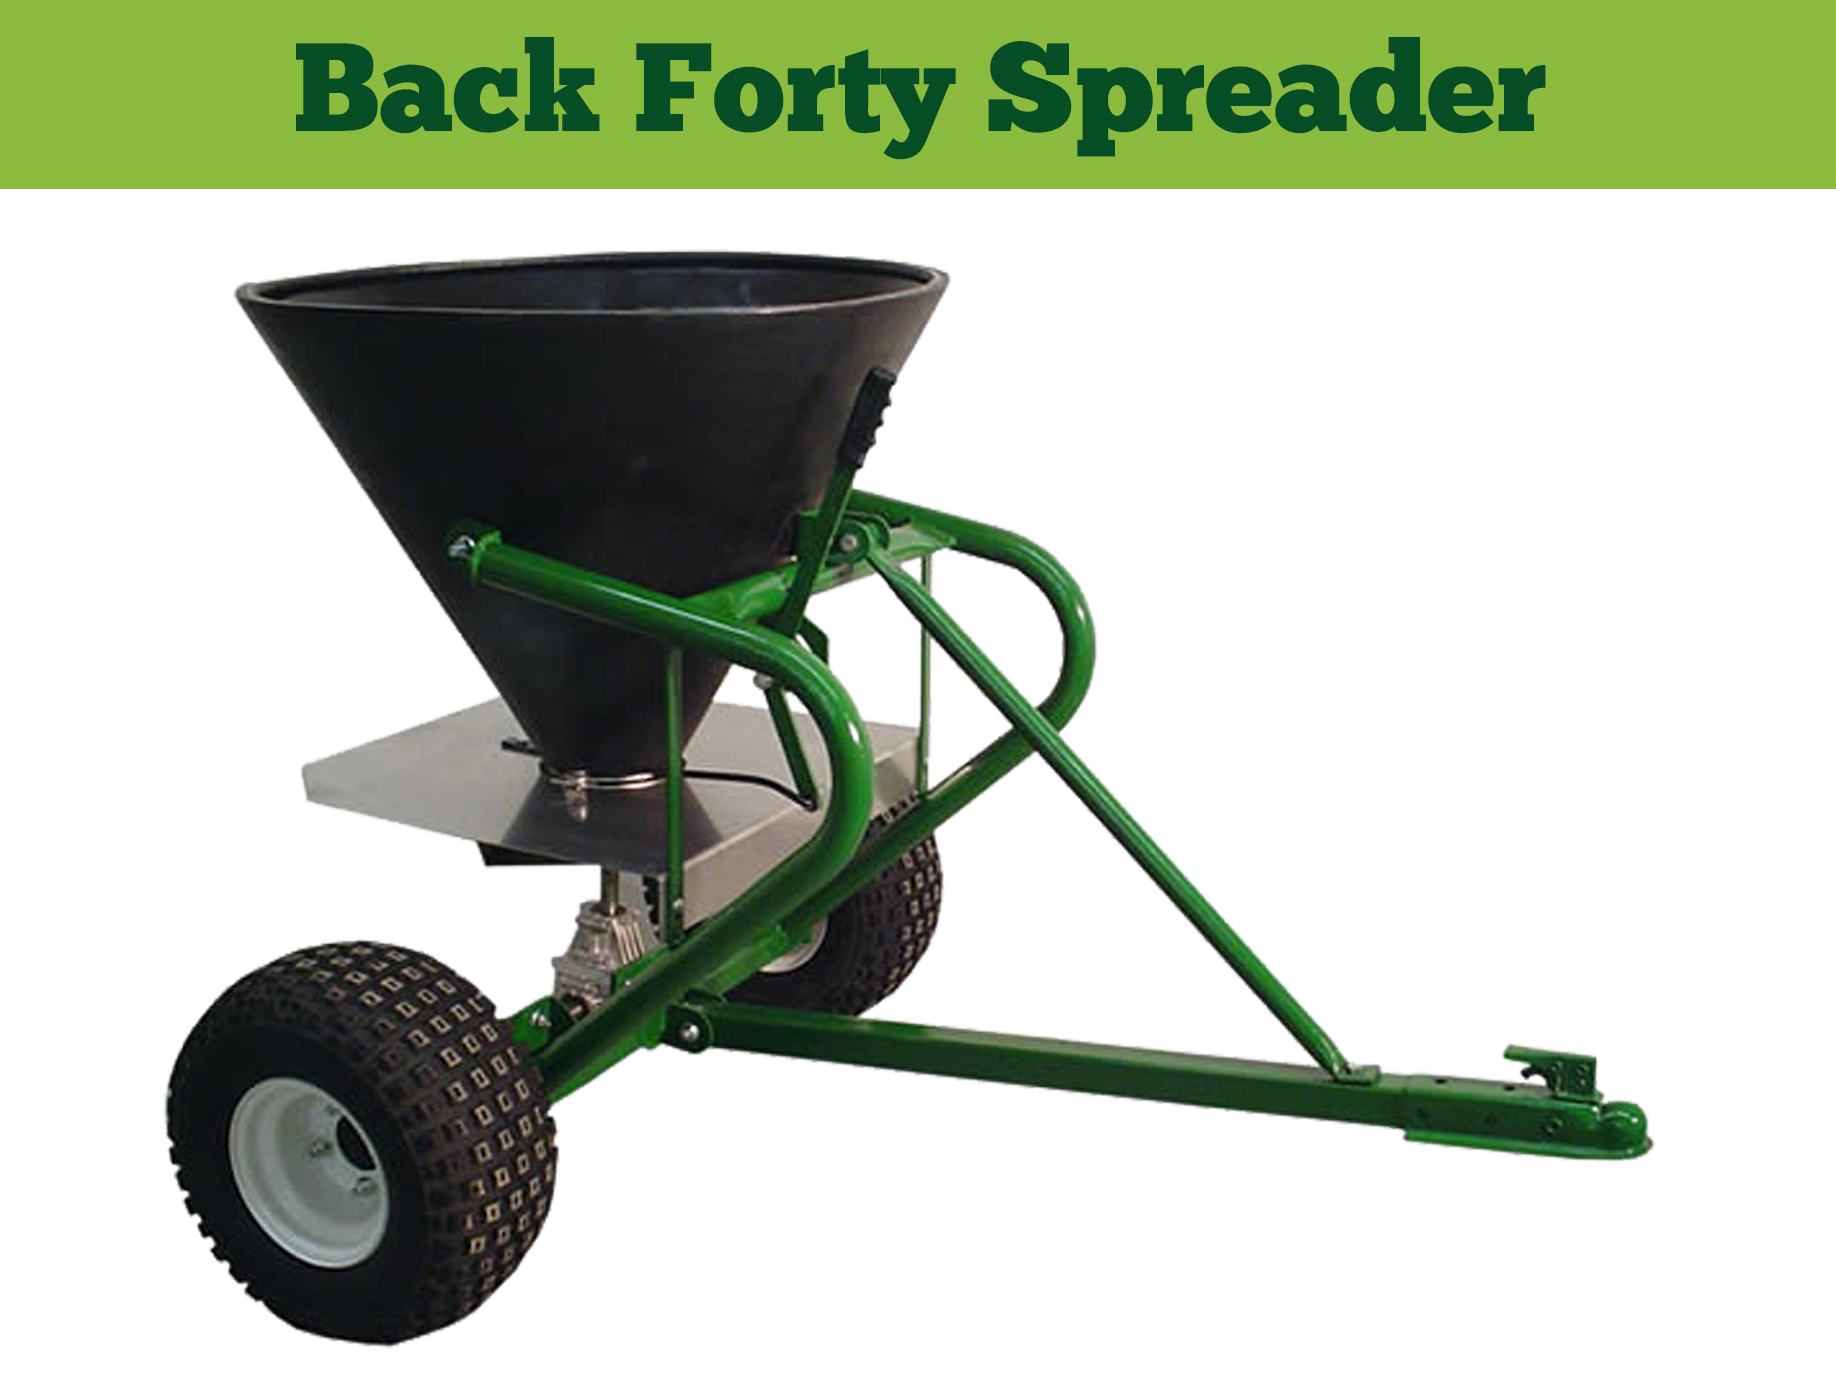 Back Forty Spreader